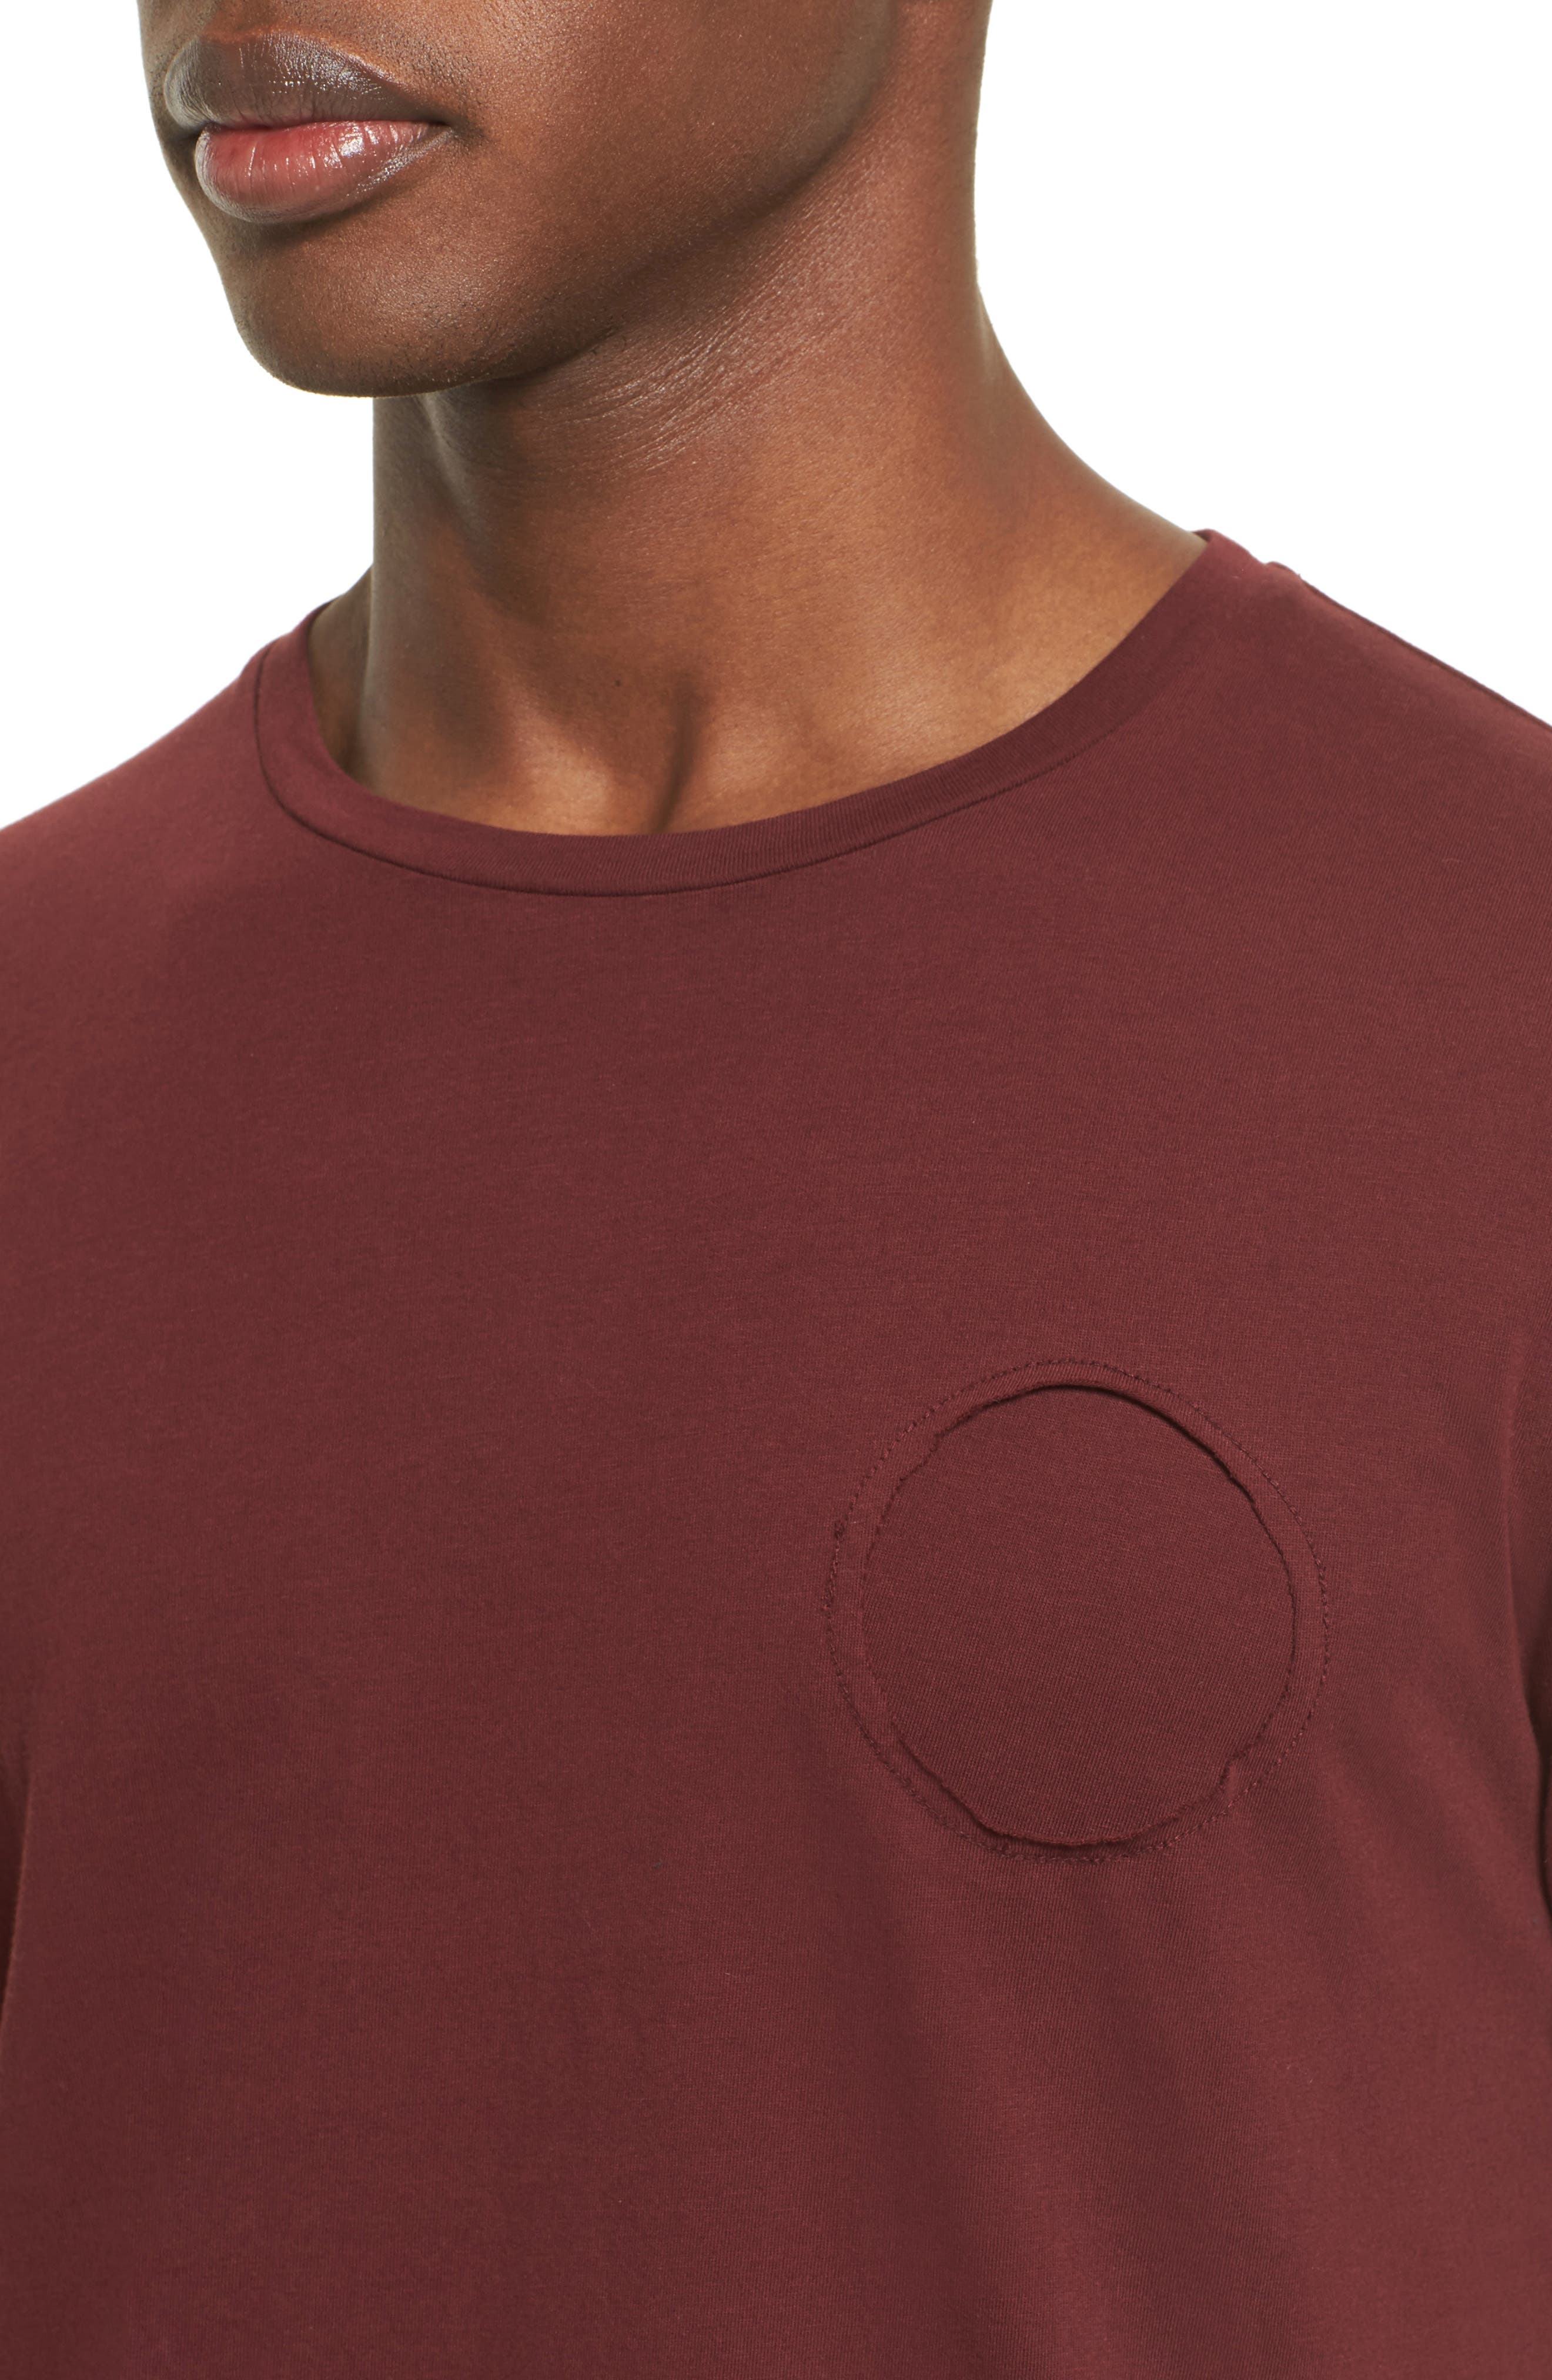 Contrast Cuff T-Shirt,                             Alternate thumbnail 4, color,                             Maroon